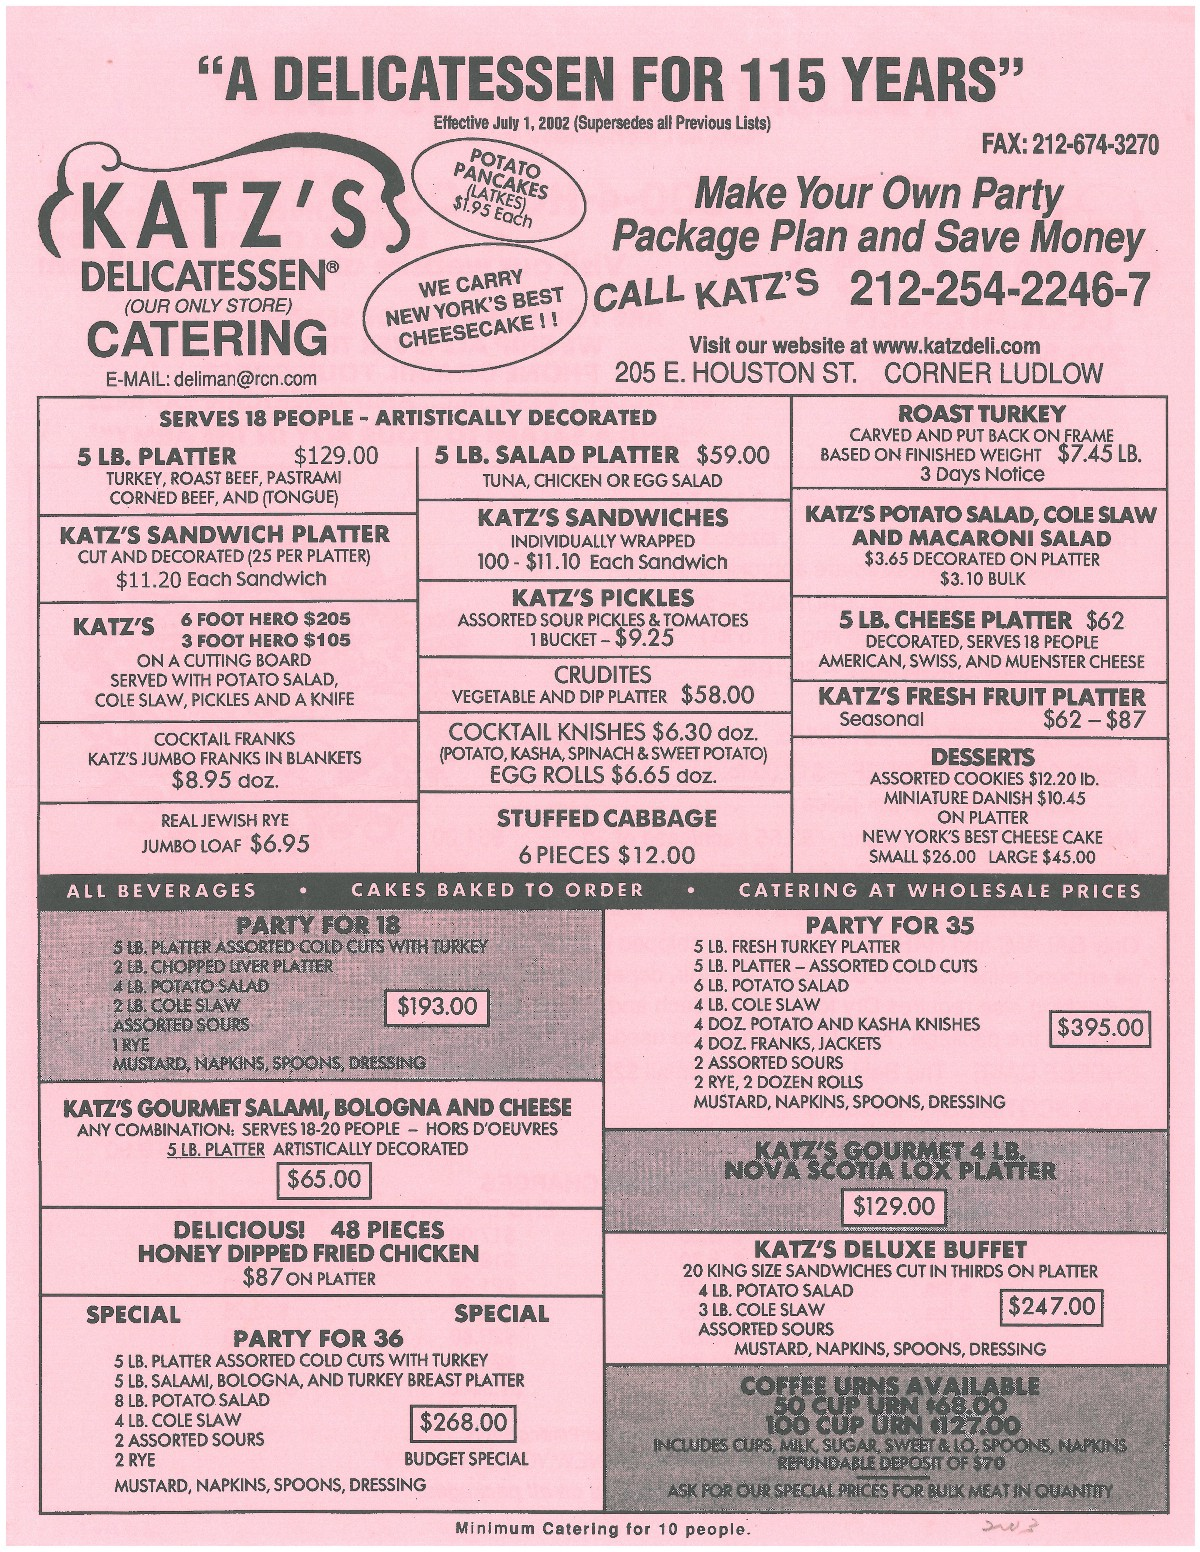 the history of katz's delicatessen – get lost in katz's delicatessen